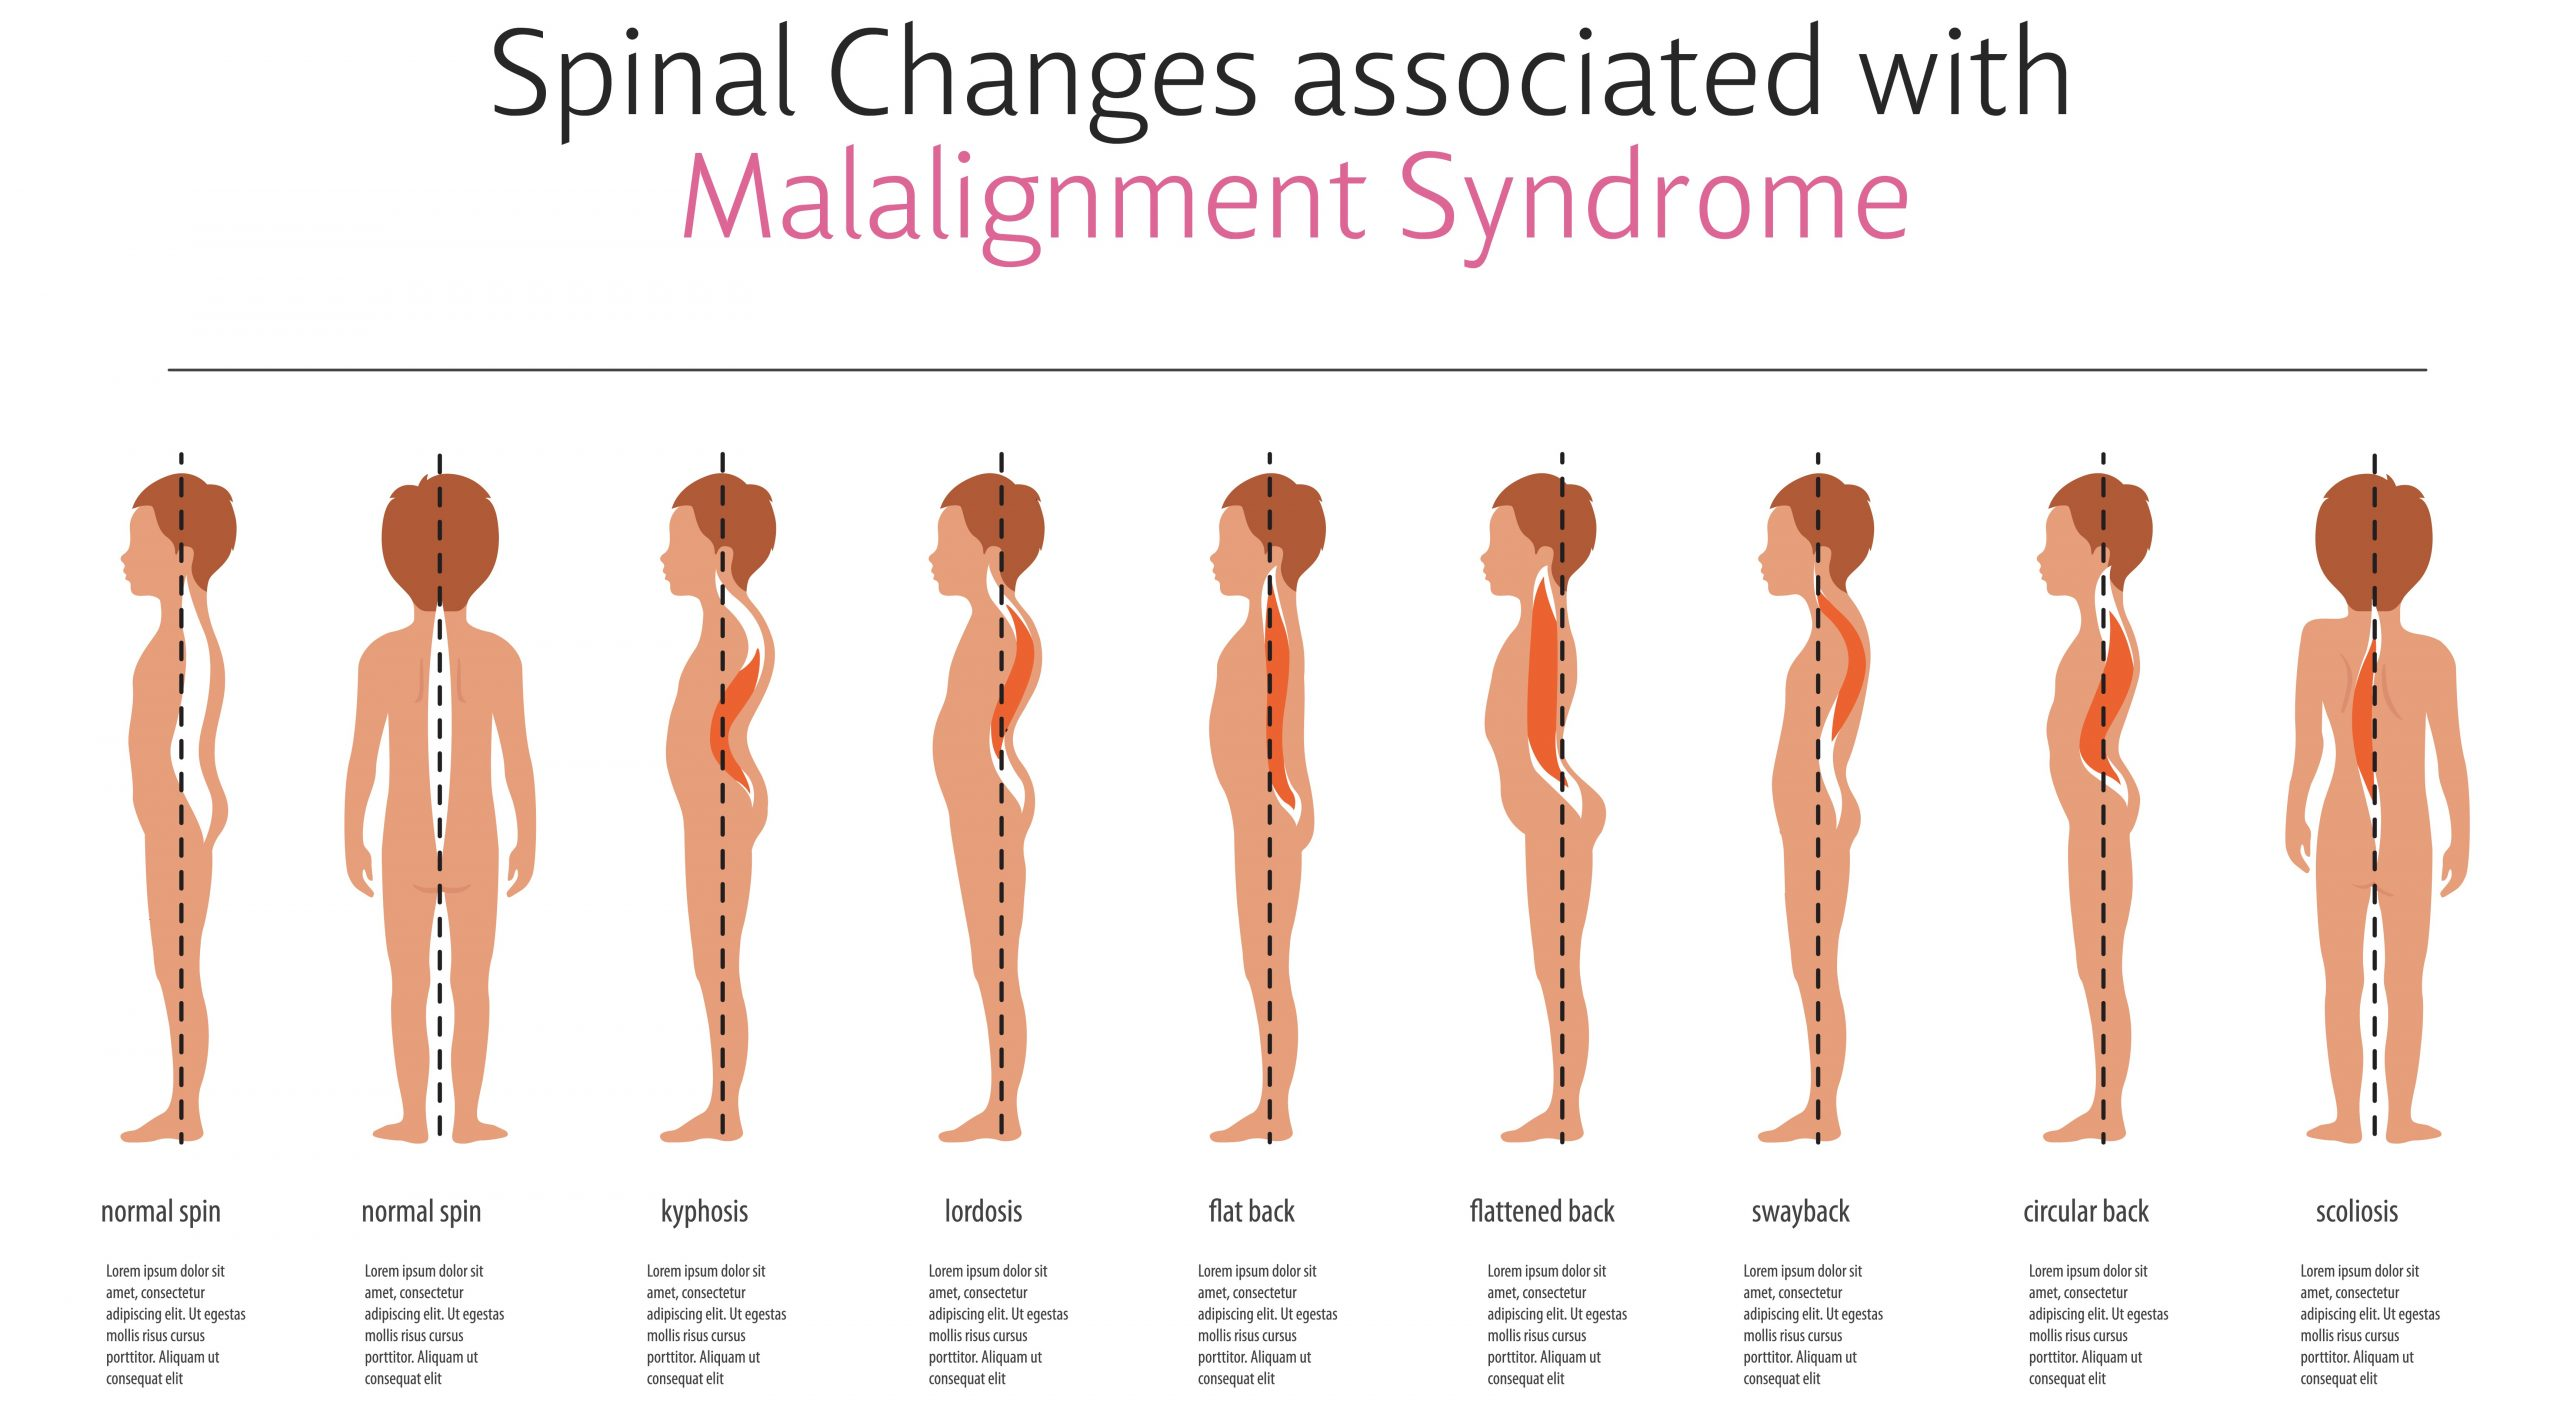 Spinal Changes due to Malalignment Syndrome